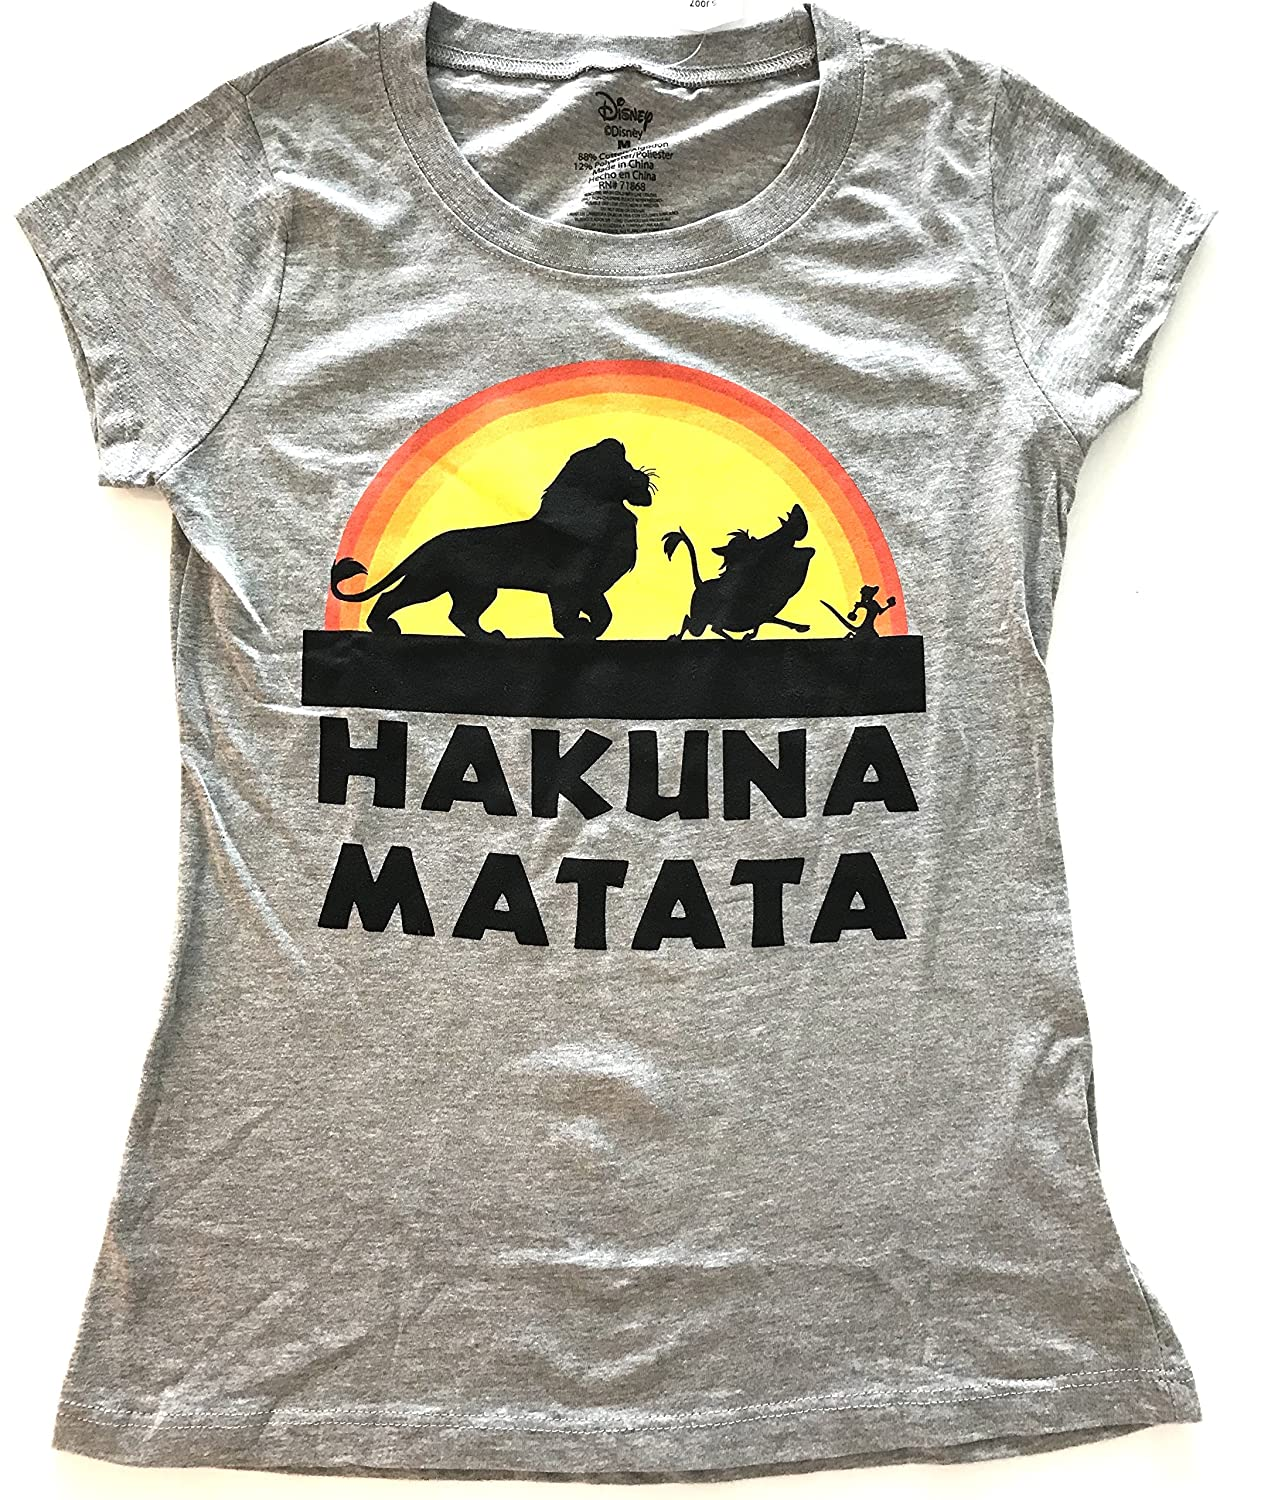 Disney Lion King Hakuna Matata T Shirt Women s Juniors color  light heather  grey fitted T shirt with cap sleeves. Printed with your favorite friends  from ... 6a9ccf740